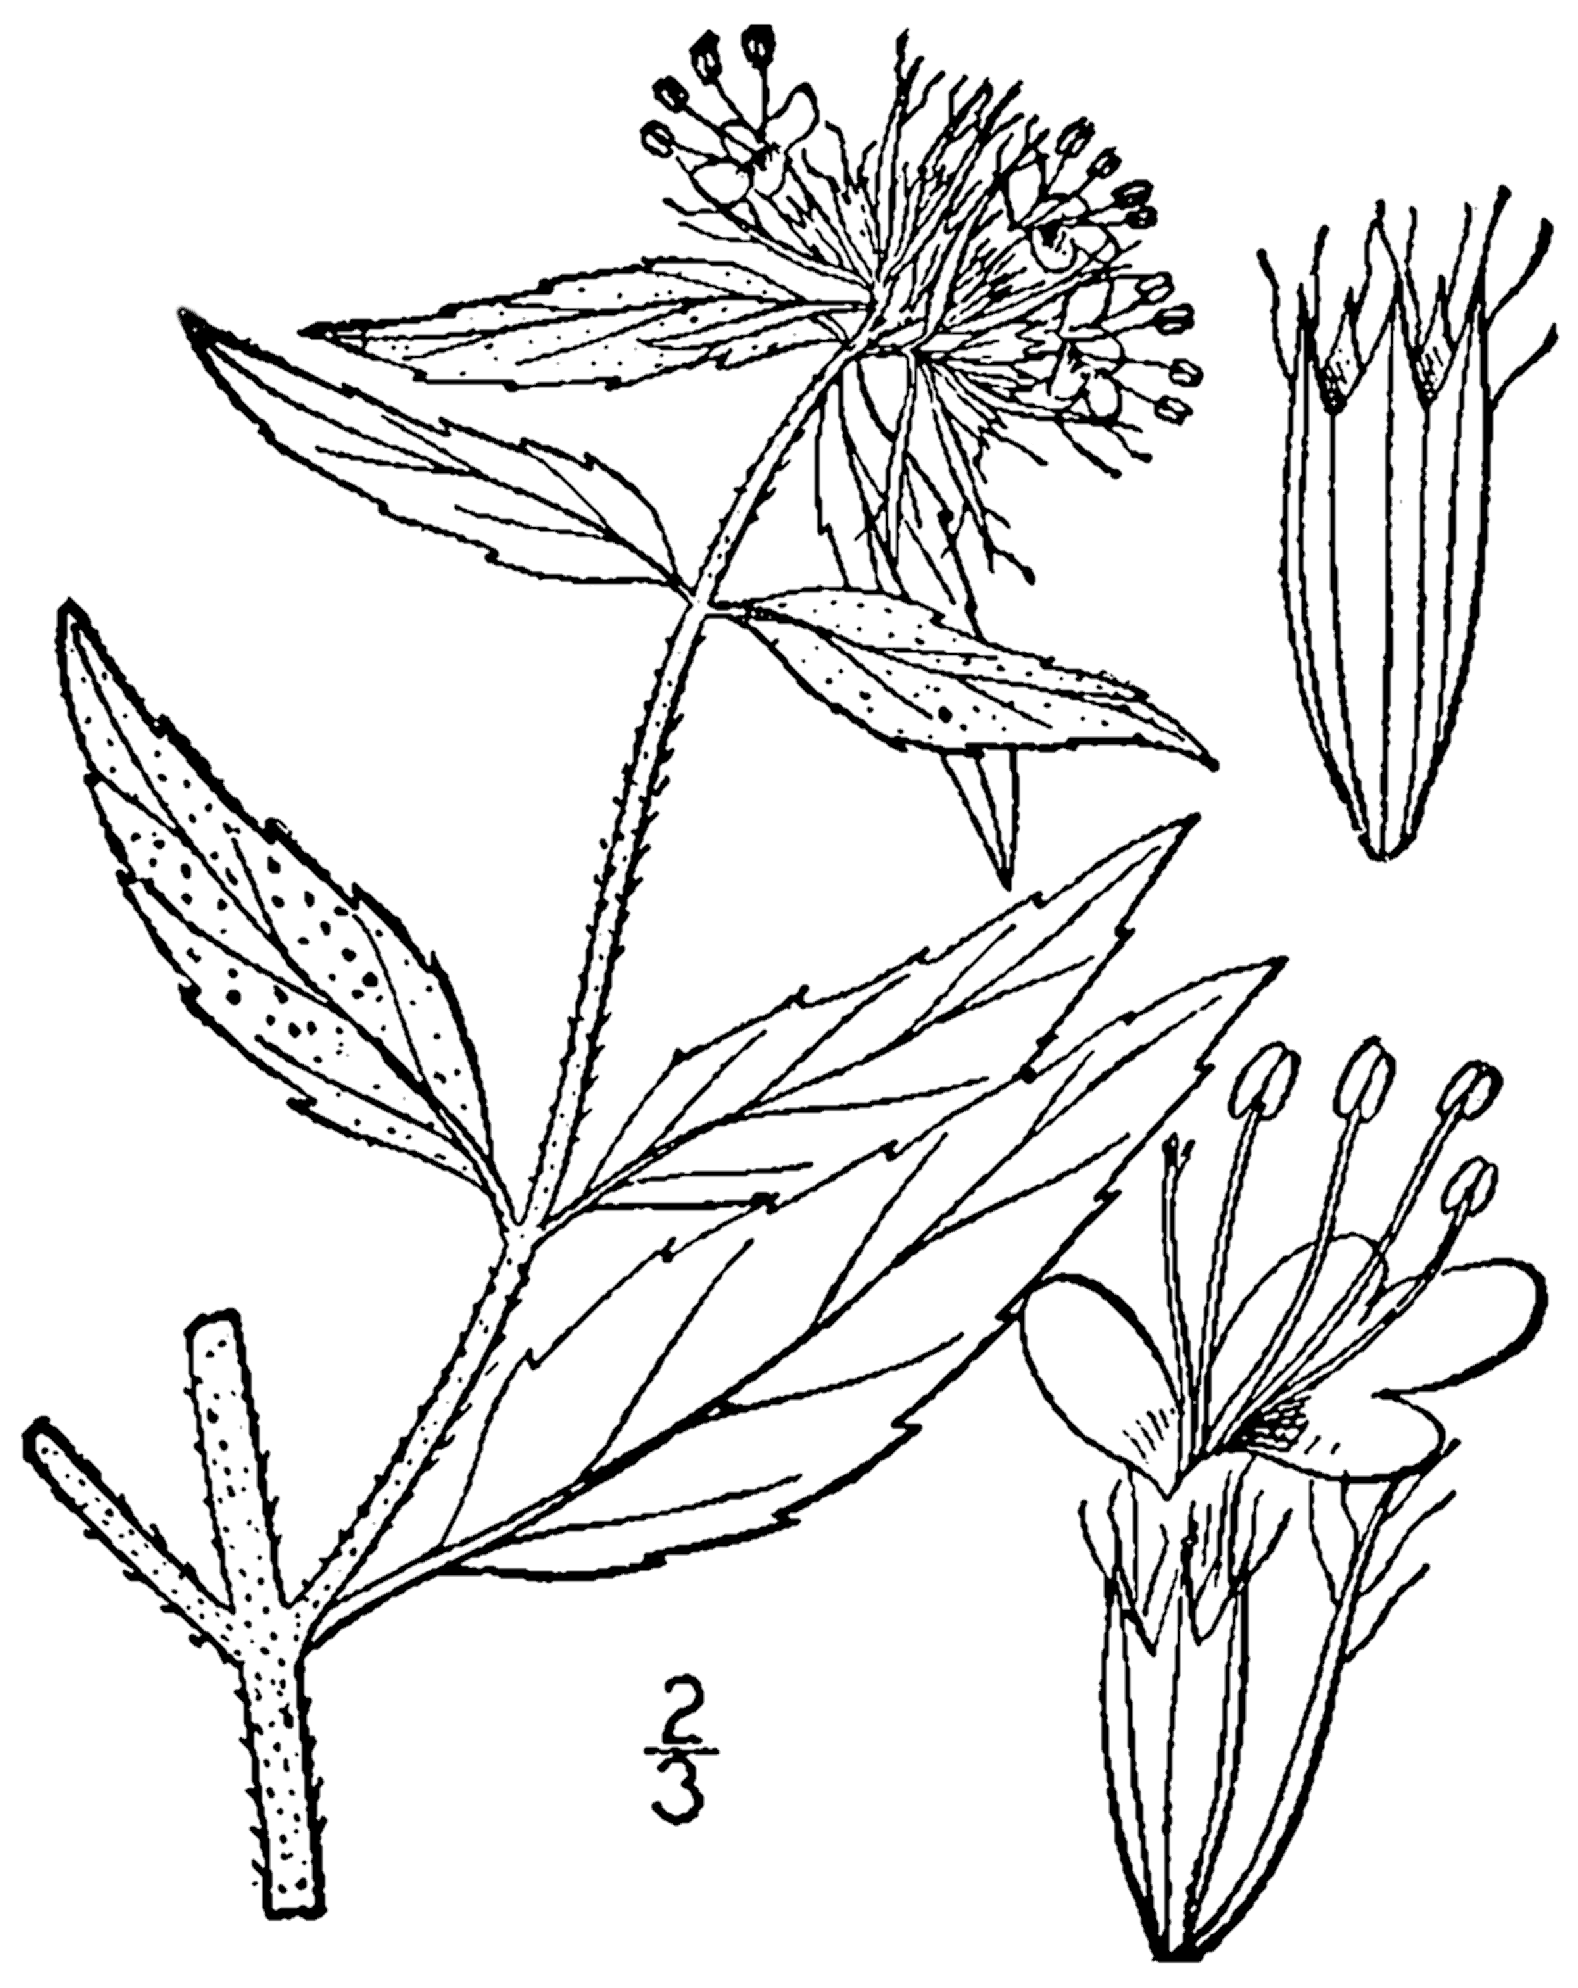 File:Pycnanthemum clinopodioides drawing 1.png - Basil PNG Black And White